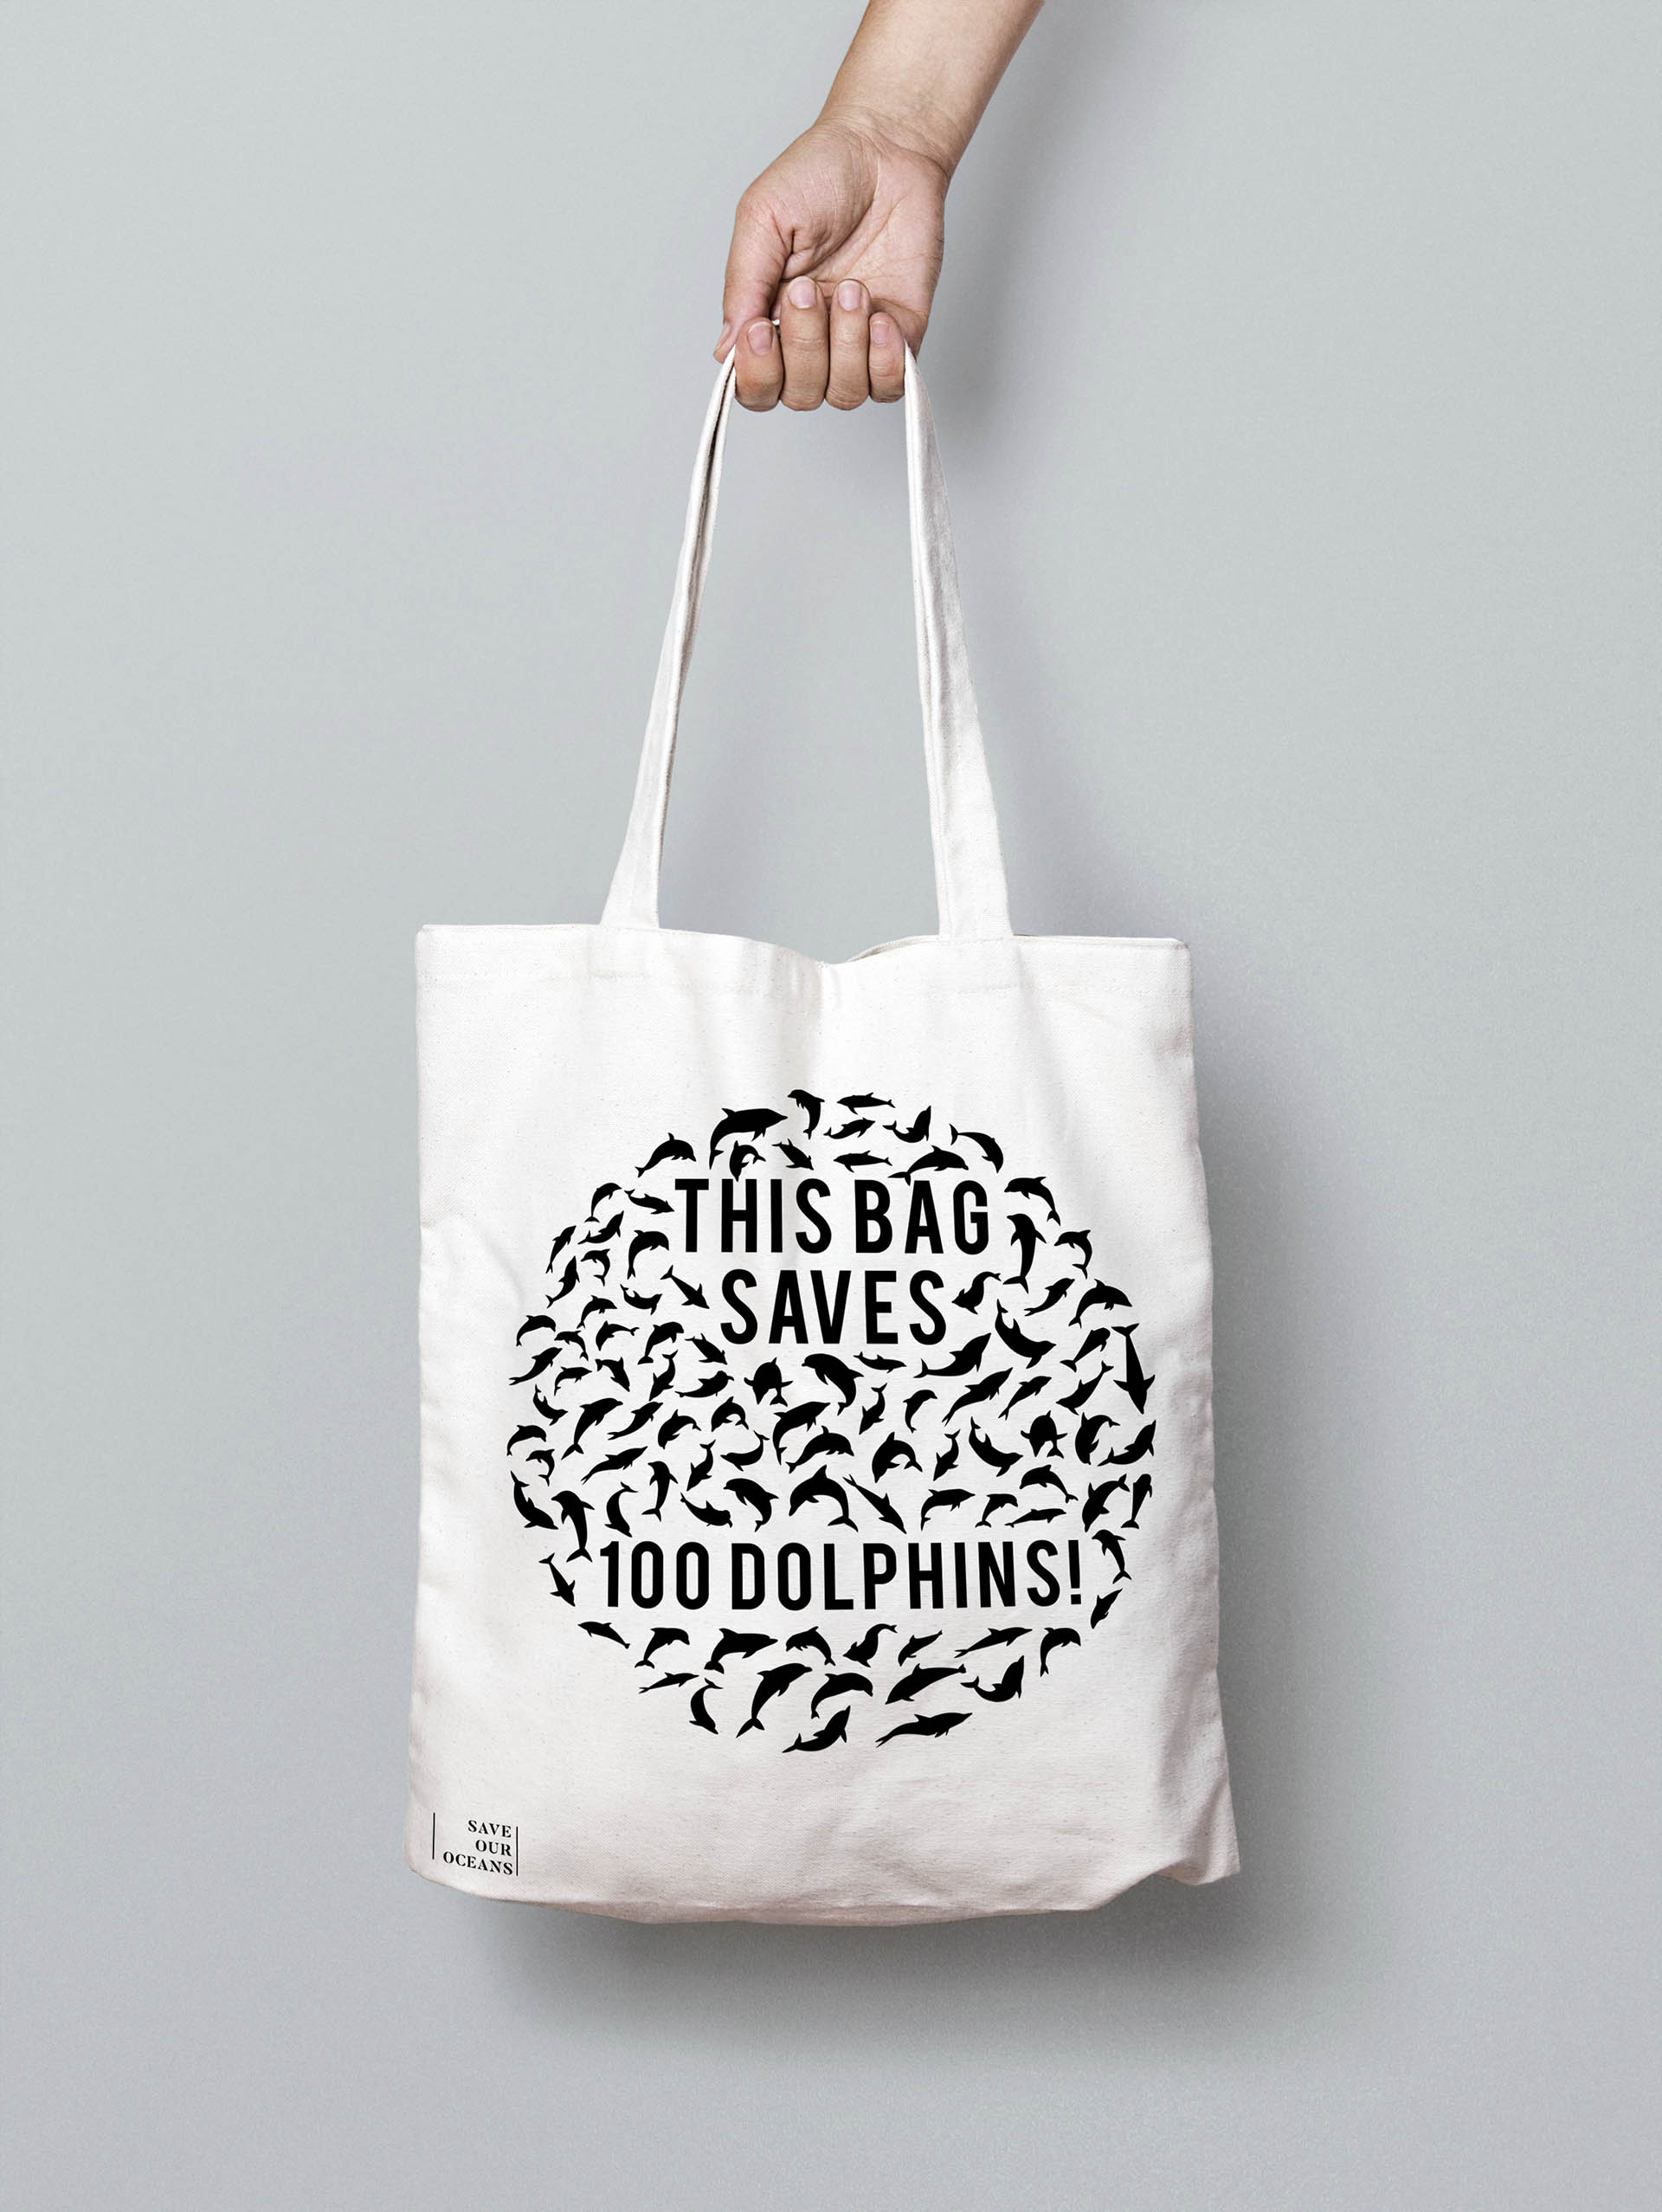 Sustainable canvas bag to promote Save Our Oceans